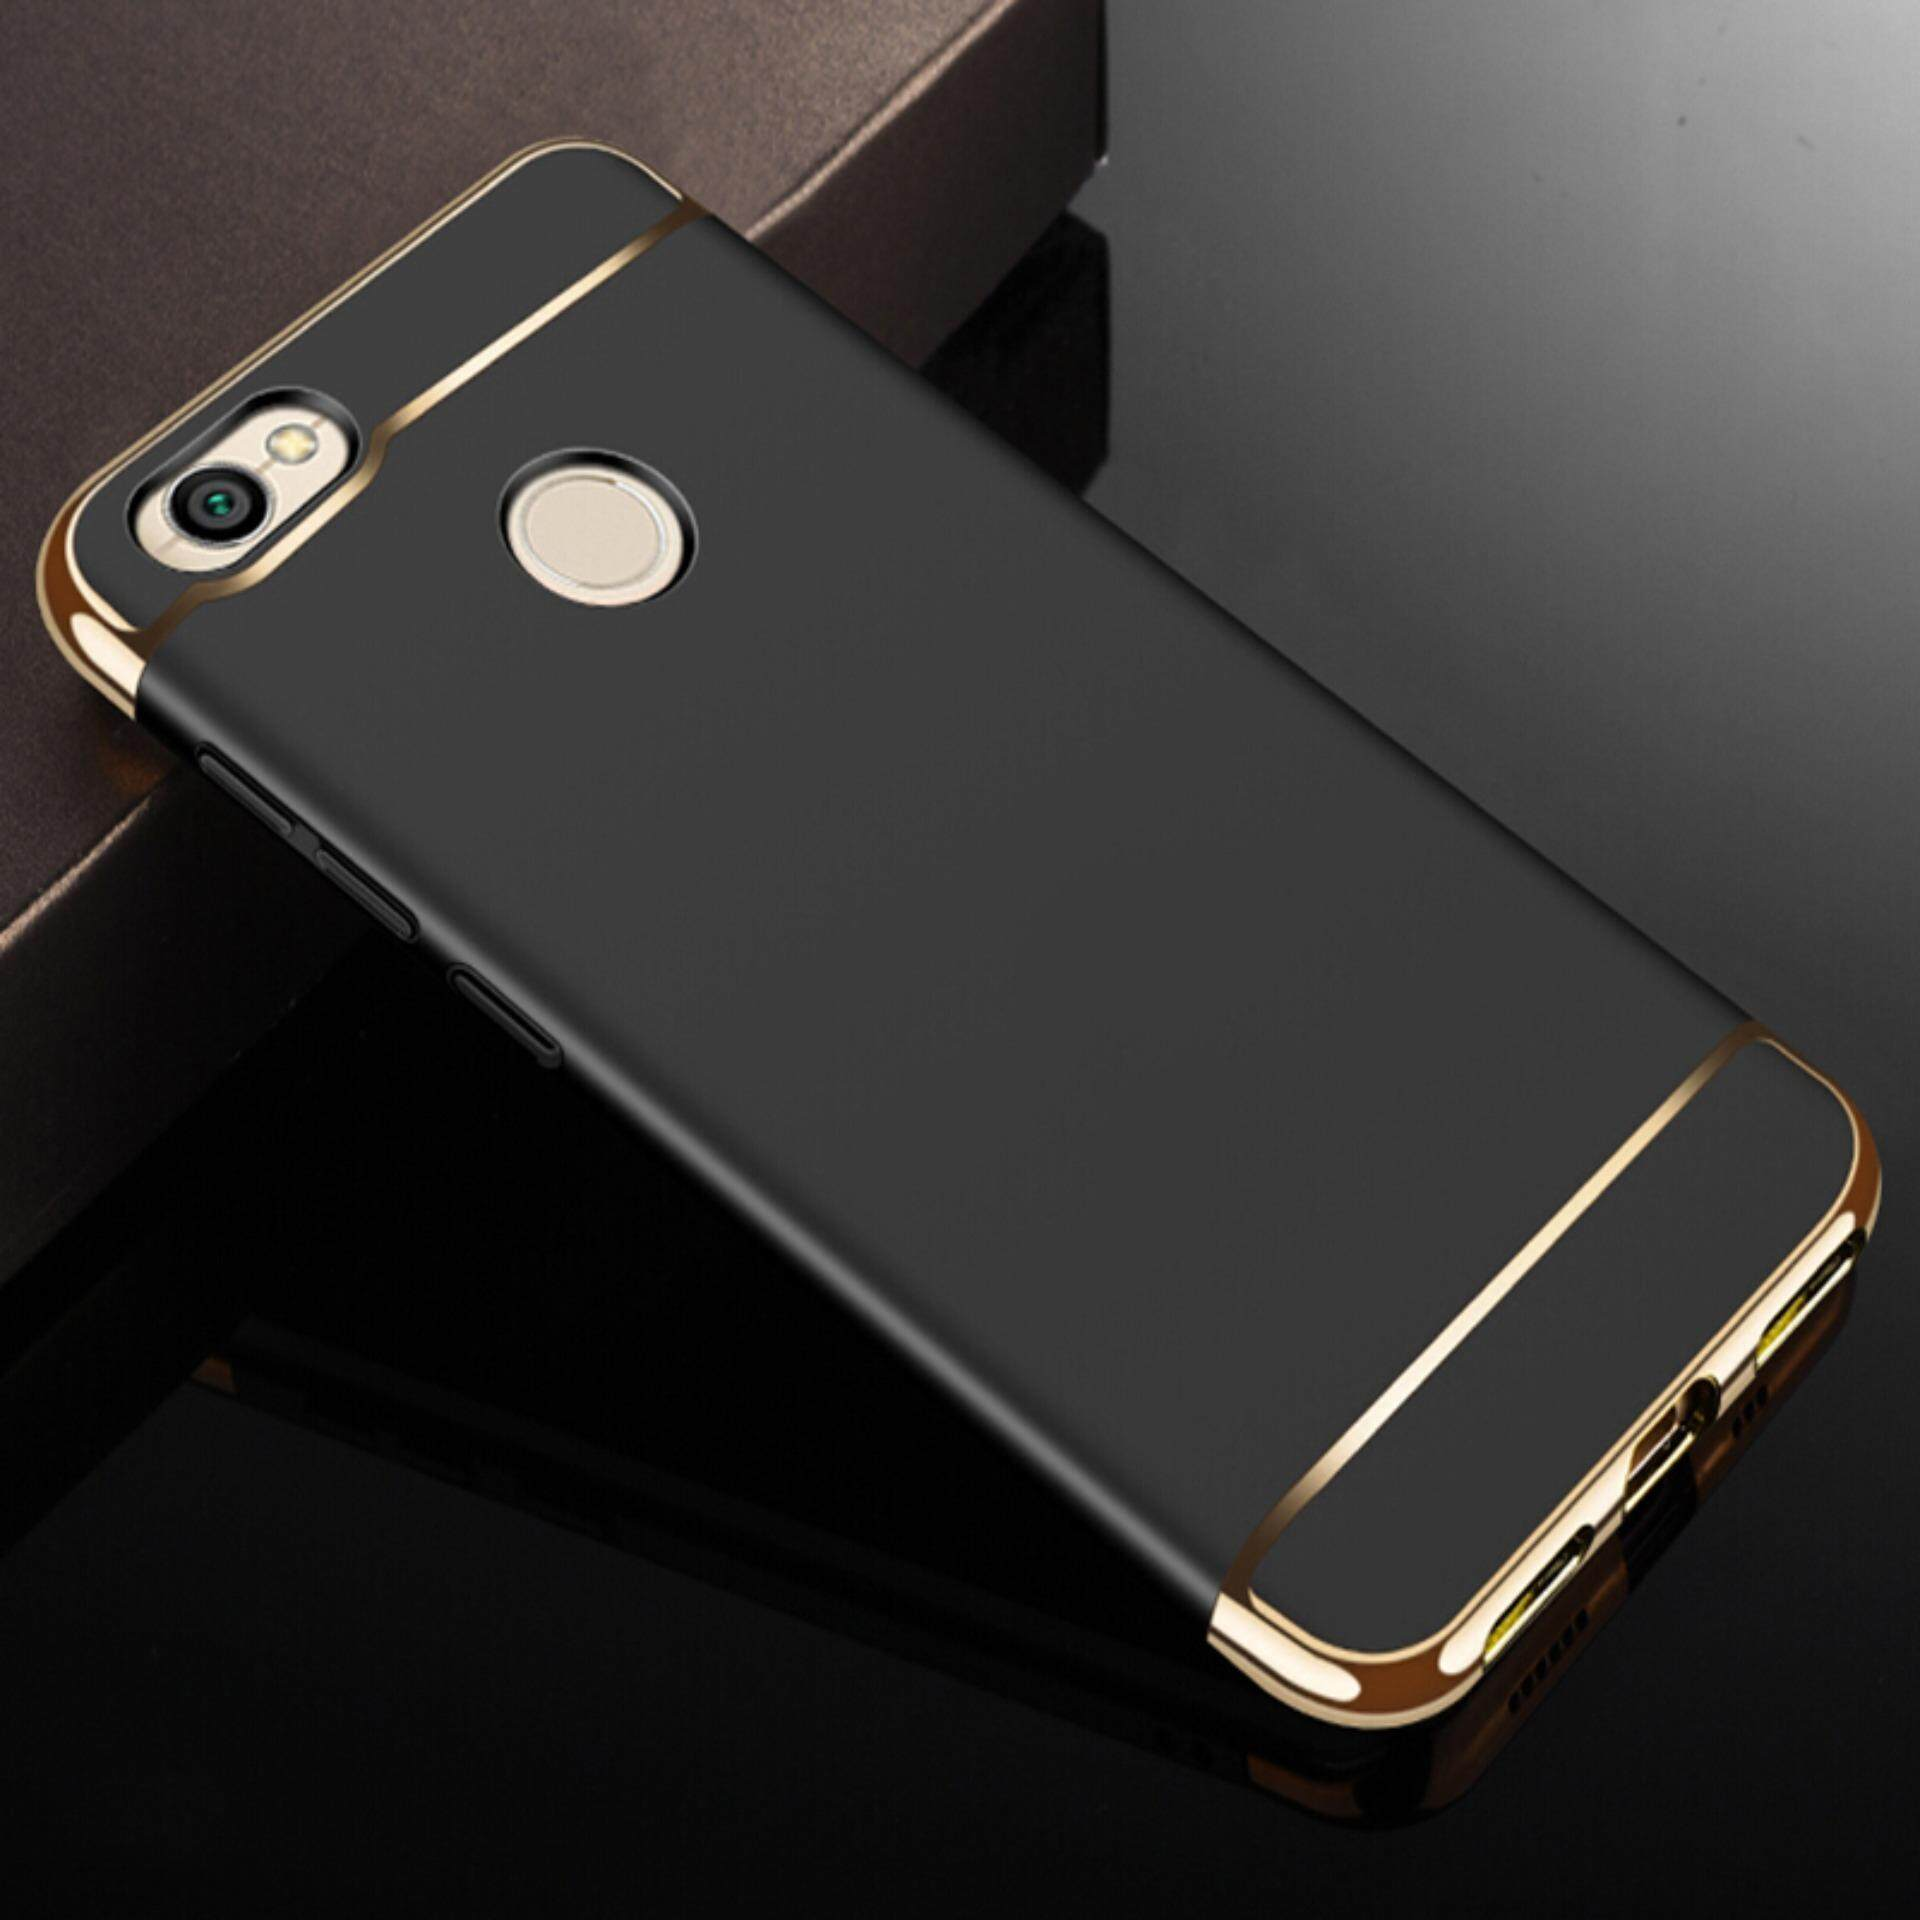 3in1 Ultra-thin Electroplated PC Back Cover Case for Xiaomi Redmi Note 5A Prime /